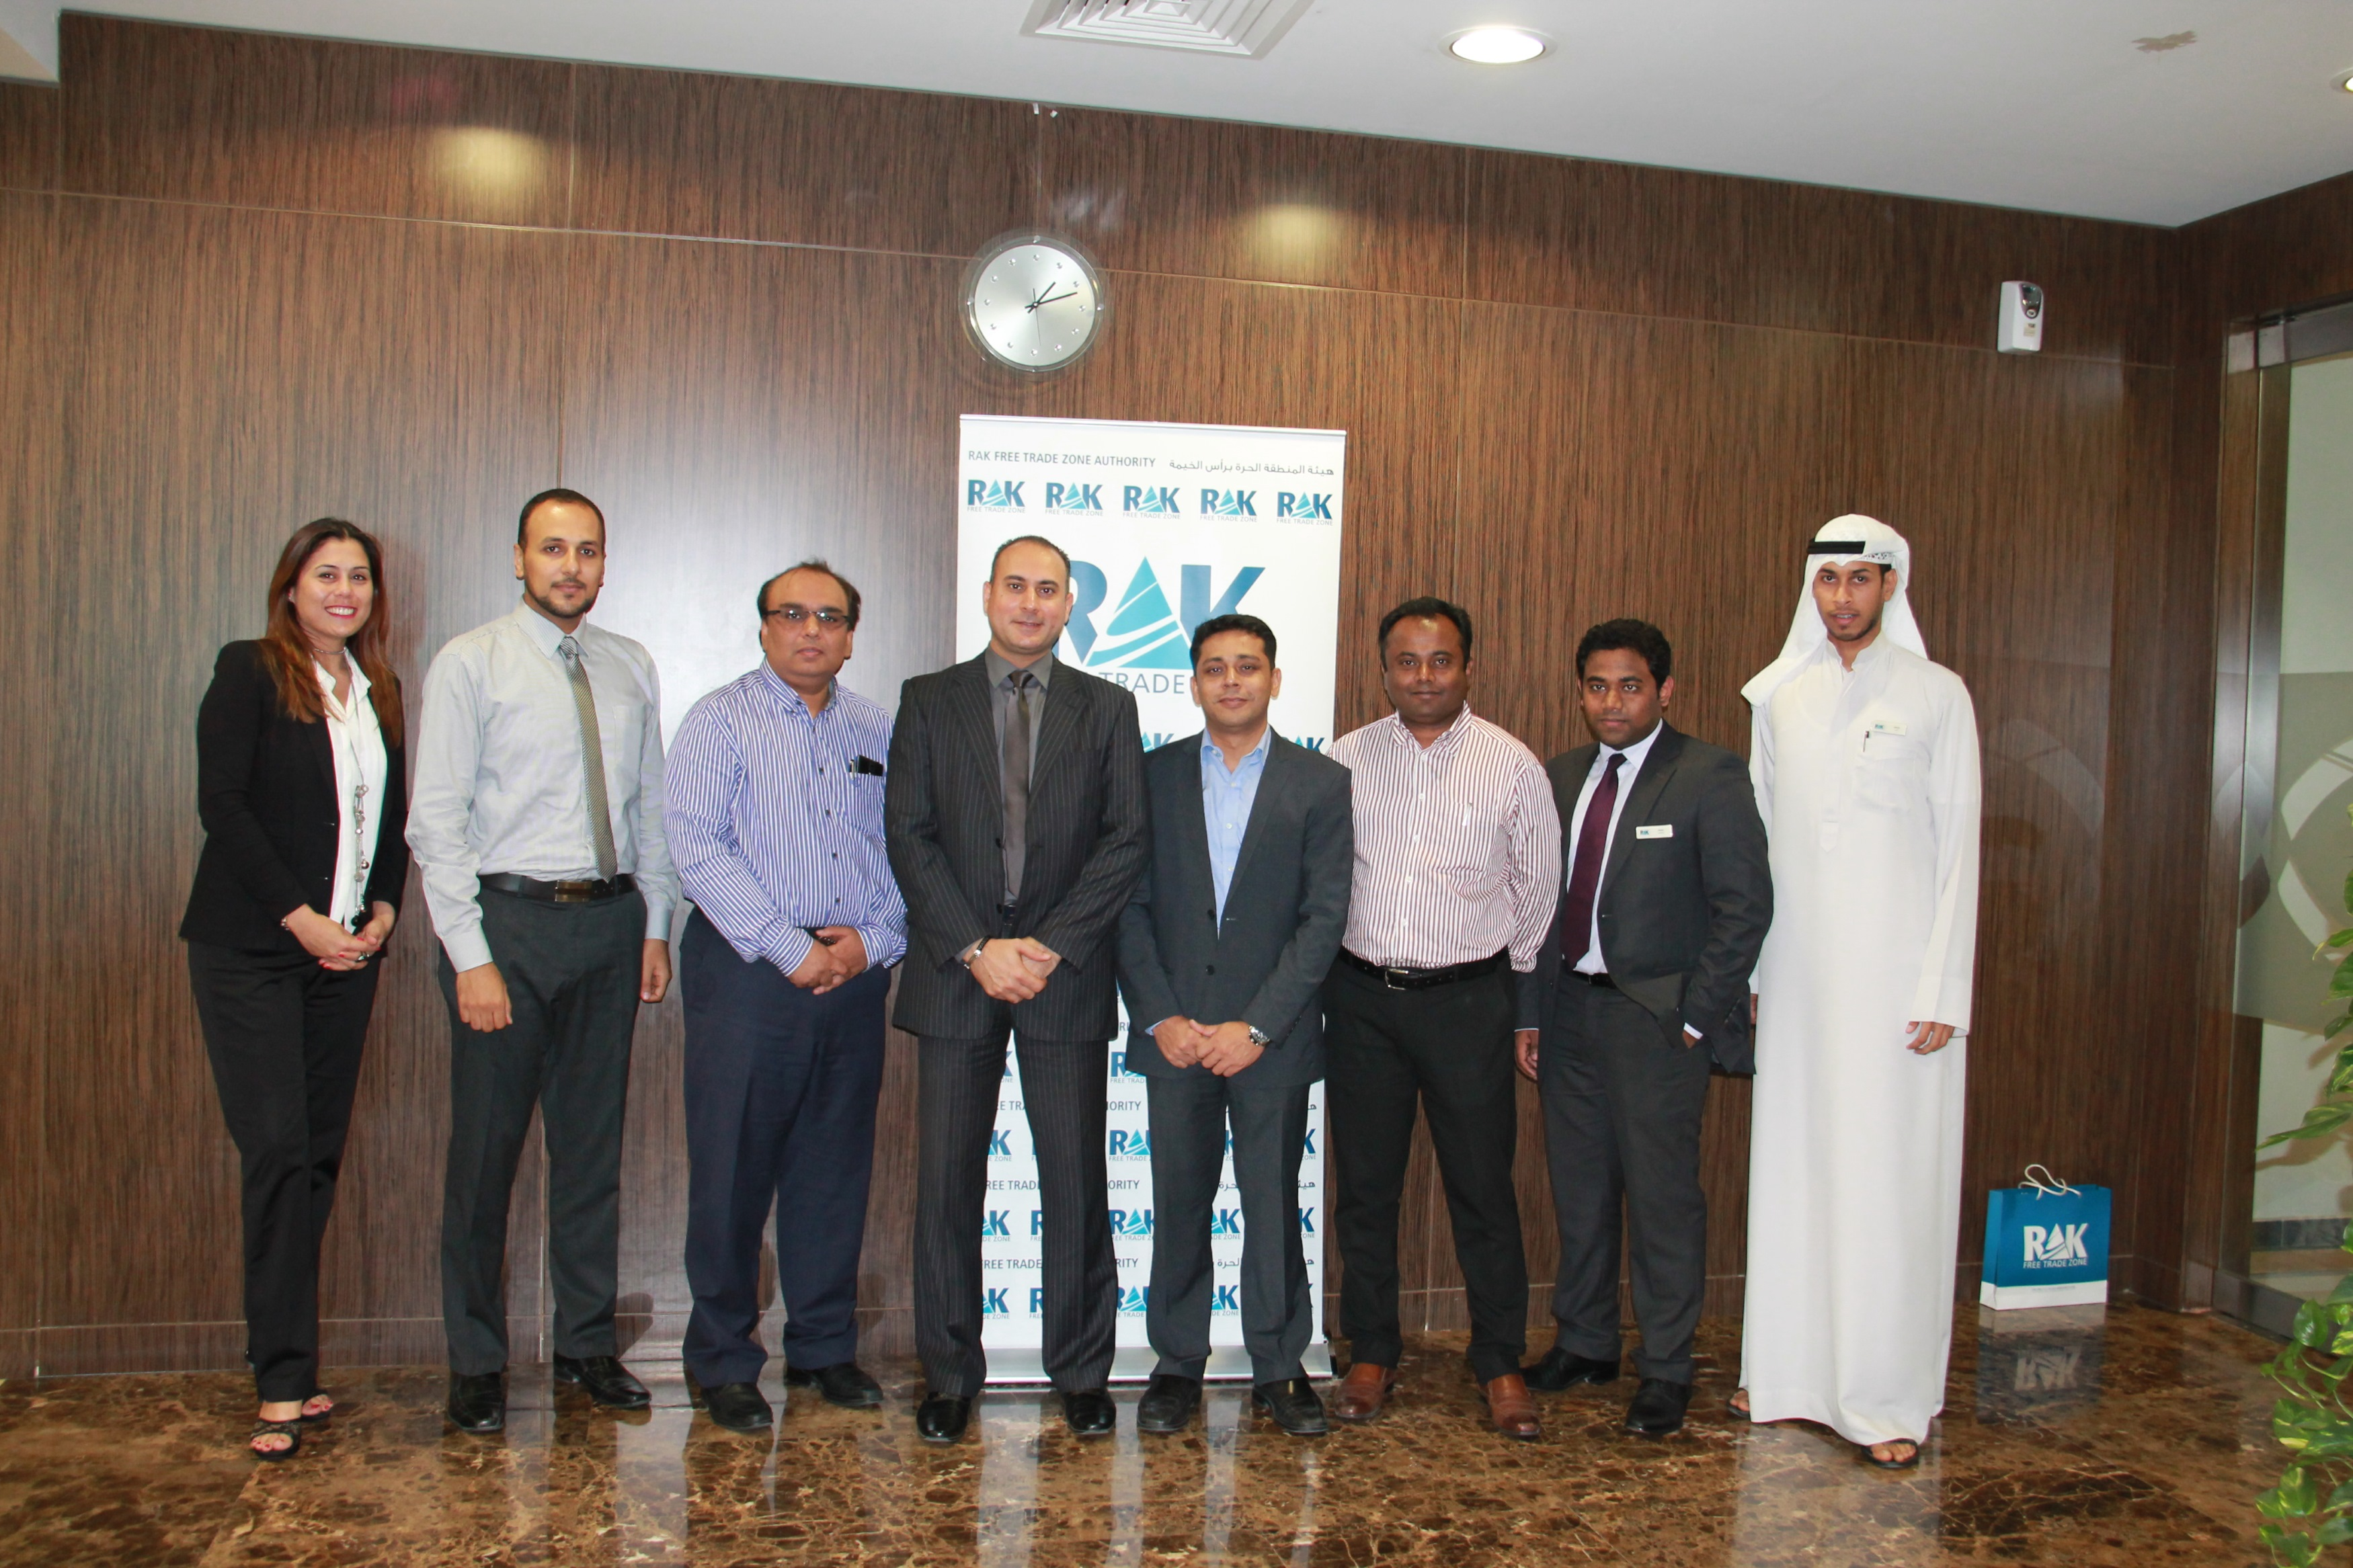 imgA delegation from Indonesia visited us recently to explore business opportunities in Ras Al Khaimah